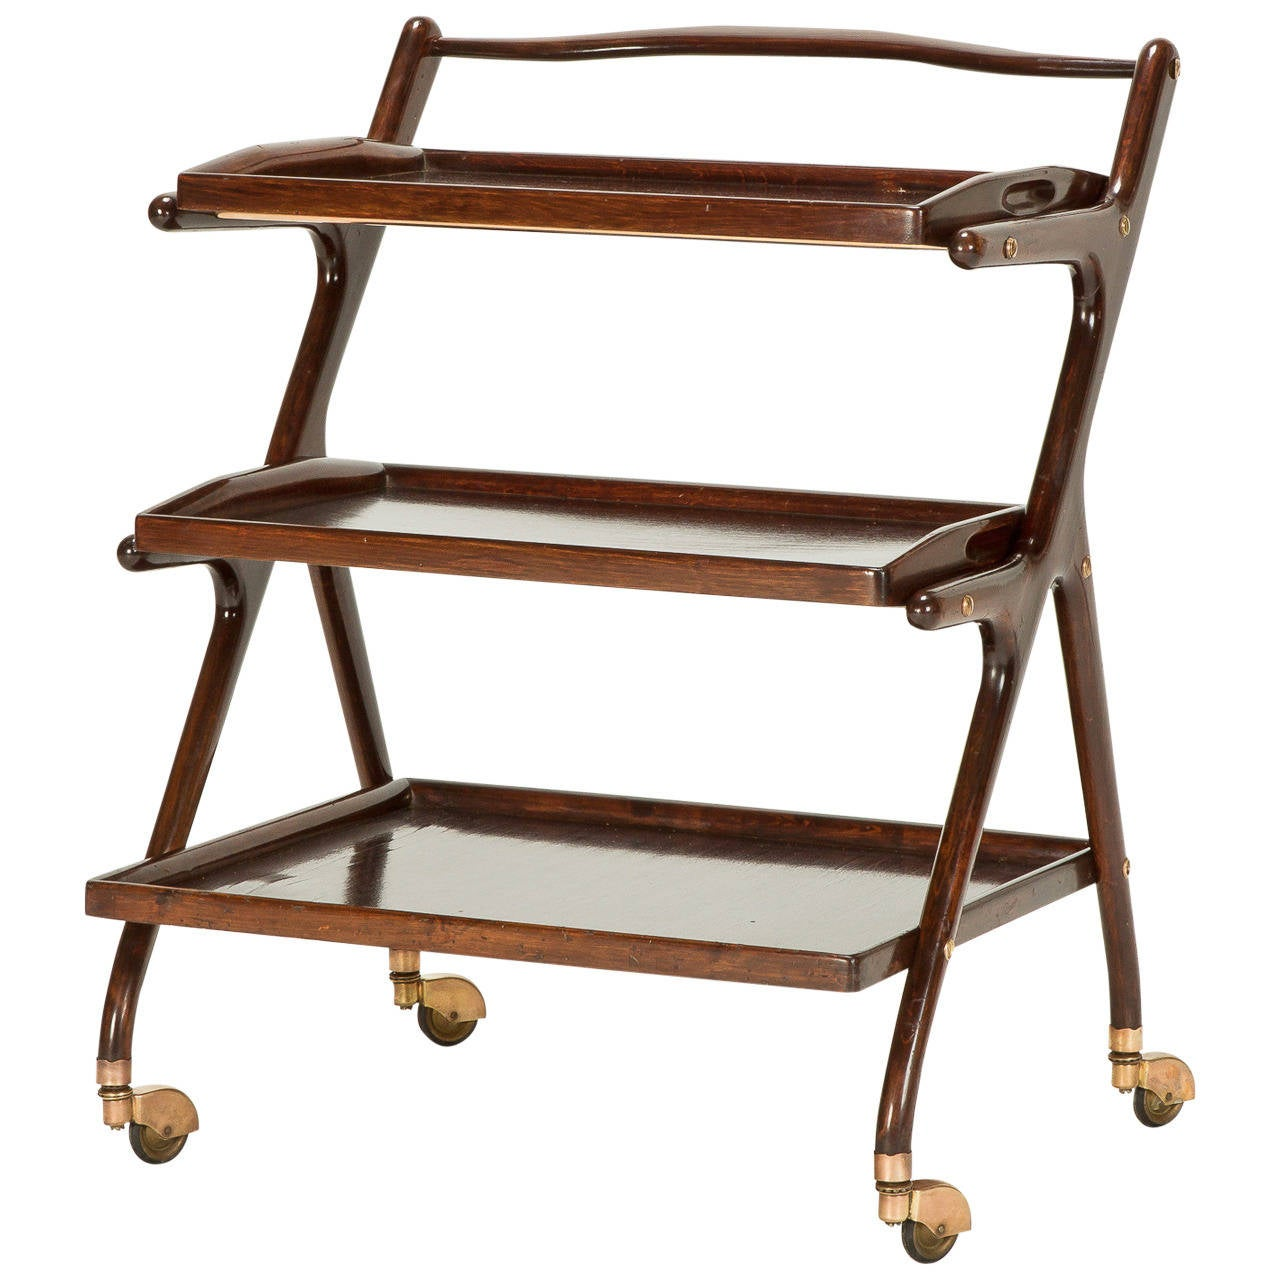 Italian Mahogany Serving Trolley by Cesare Lacca, 1950s at 1stdibs